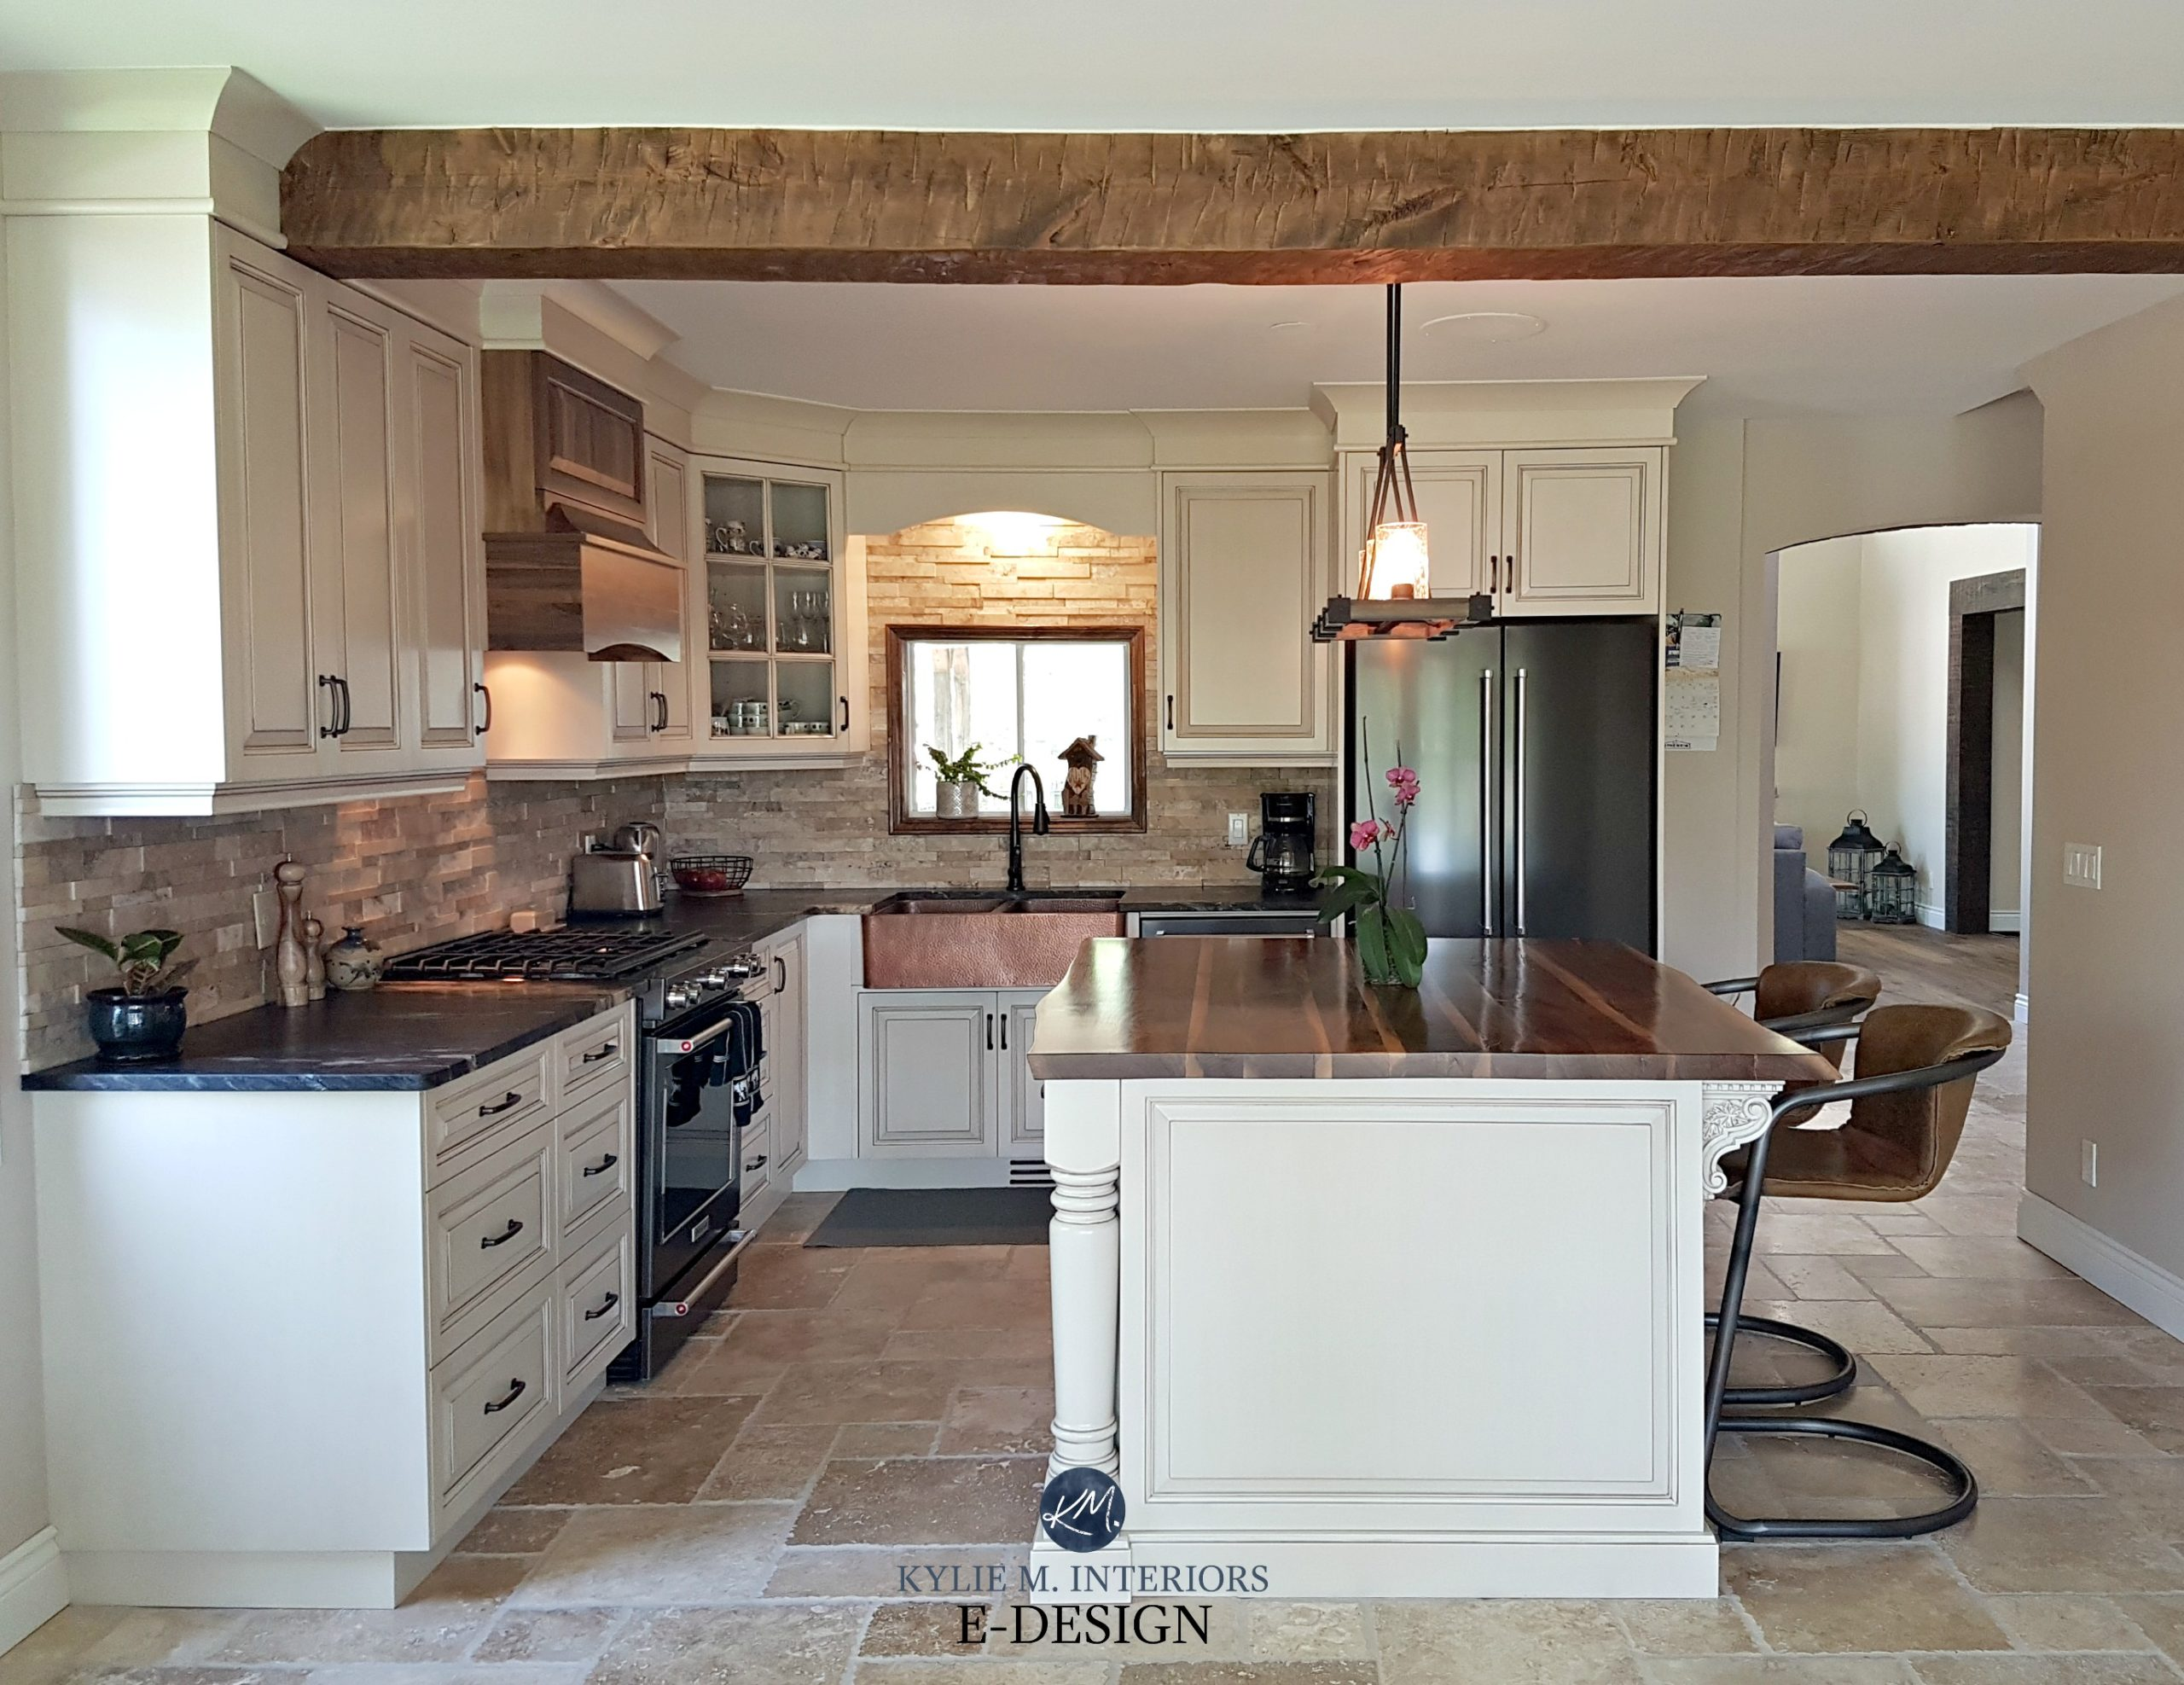 Kitchen cabinets painted Benjamin Moore Ballet White, glaze ...